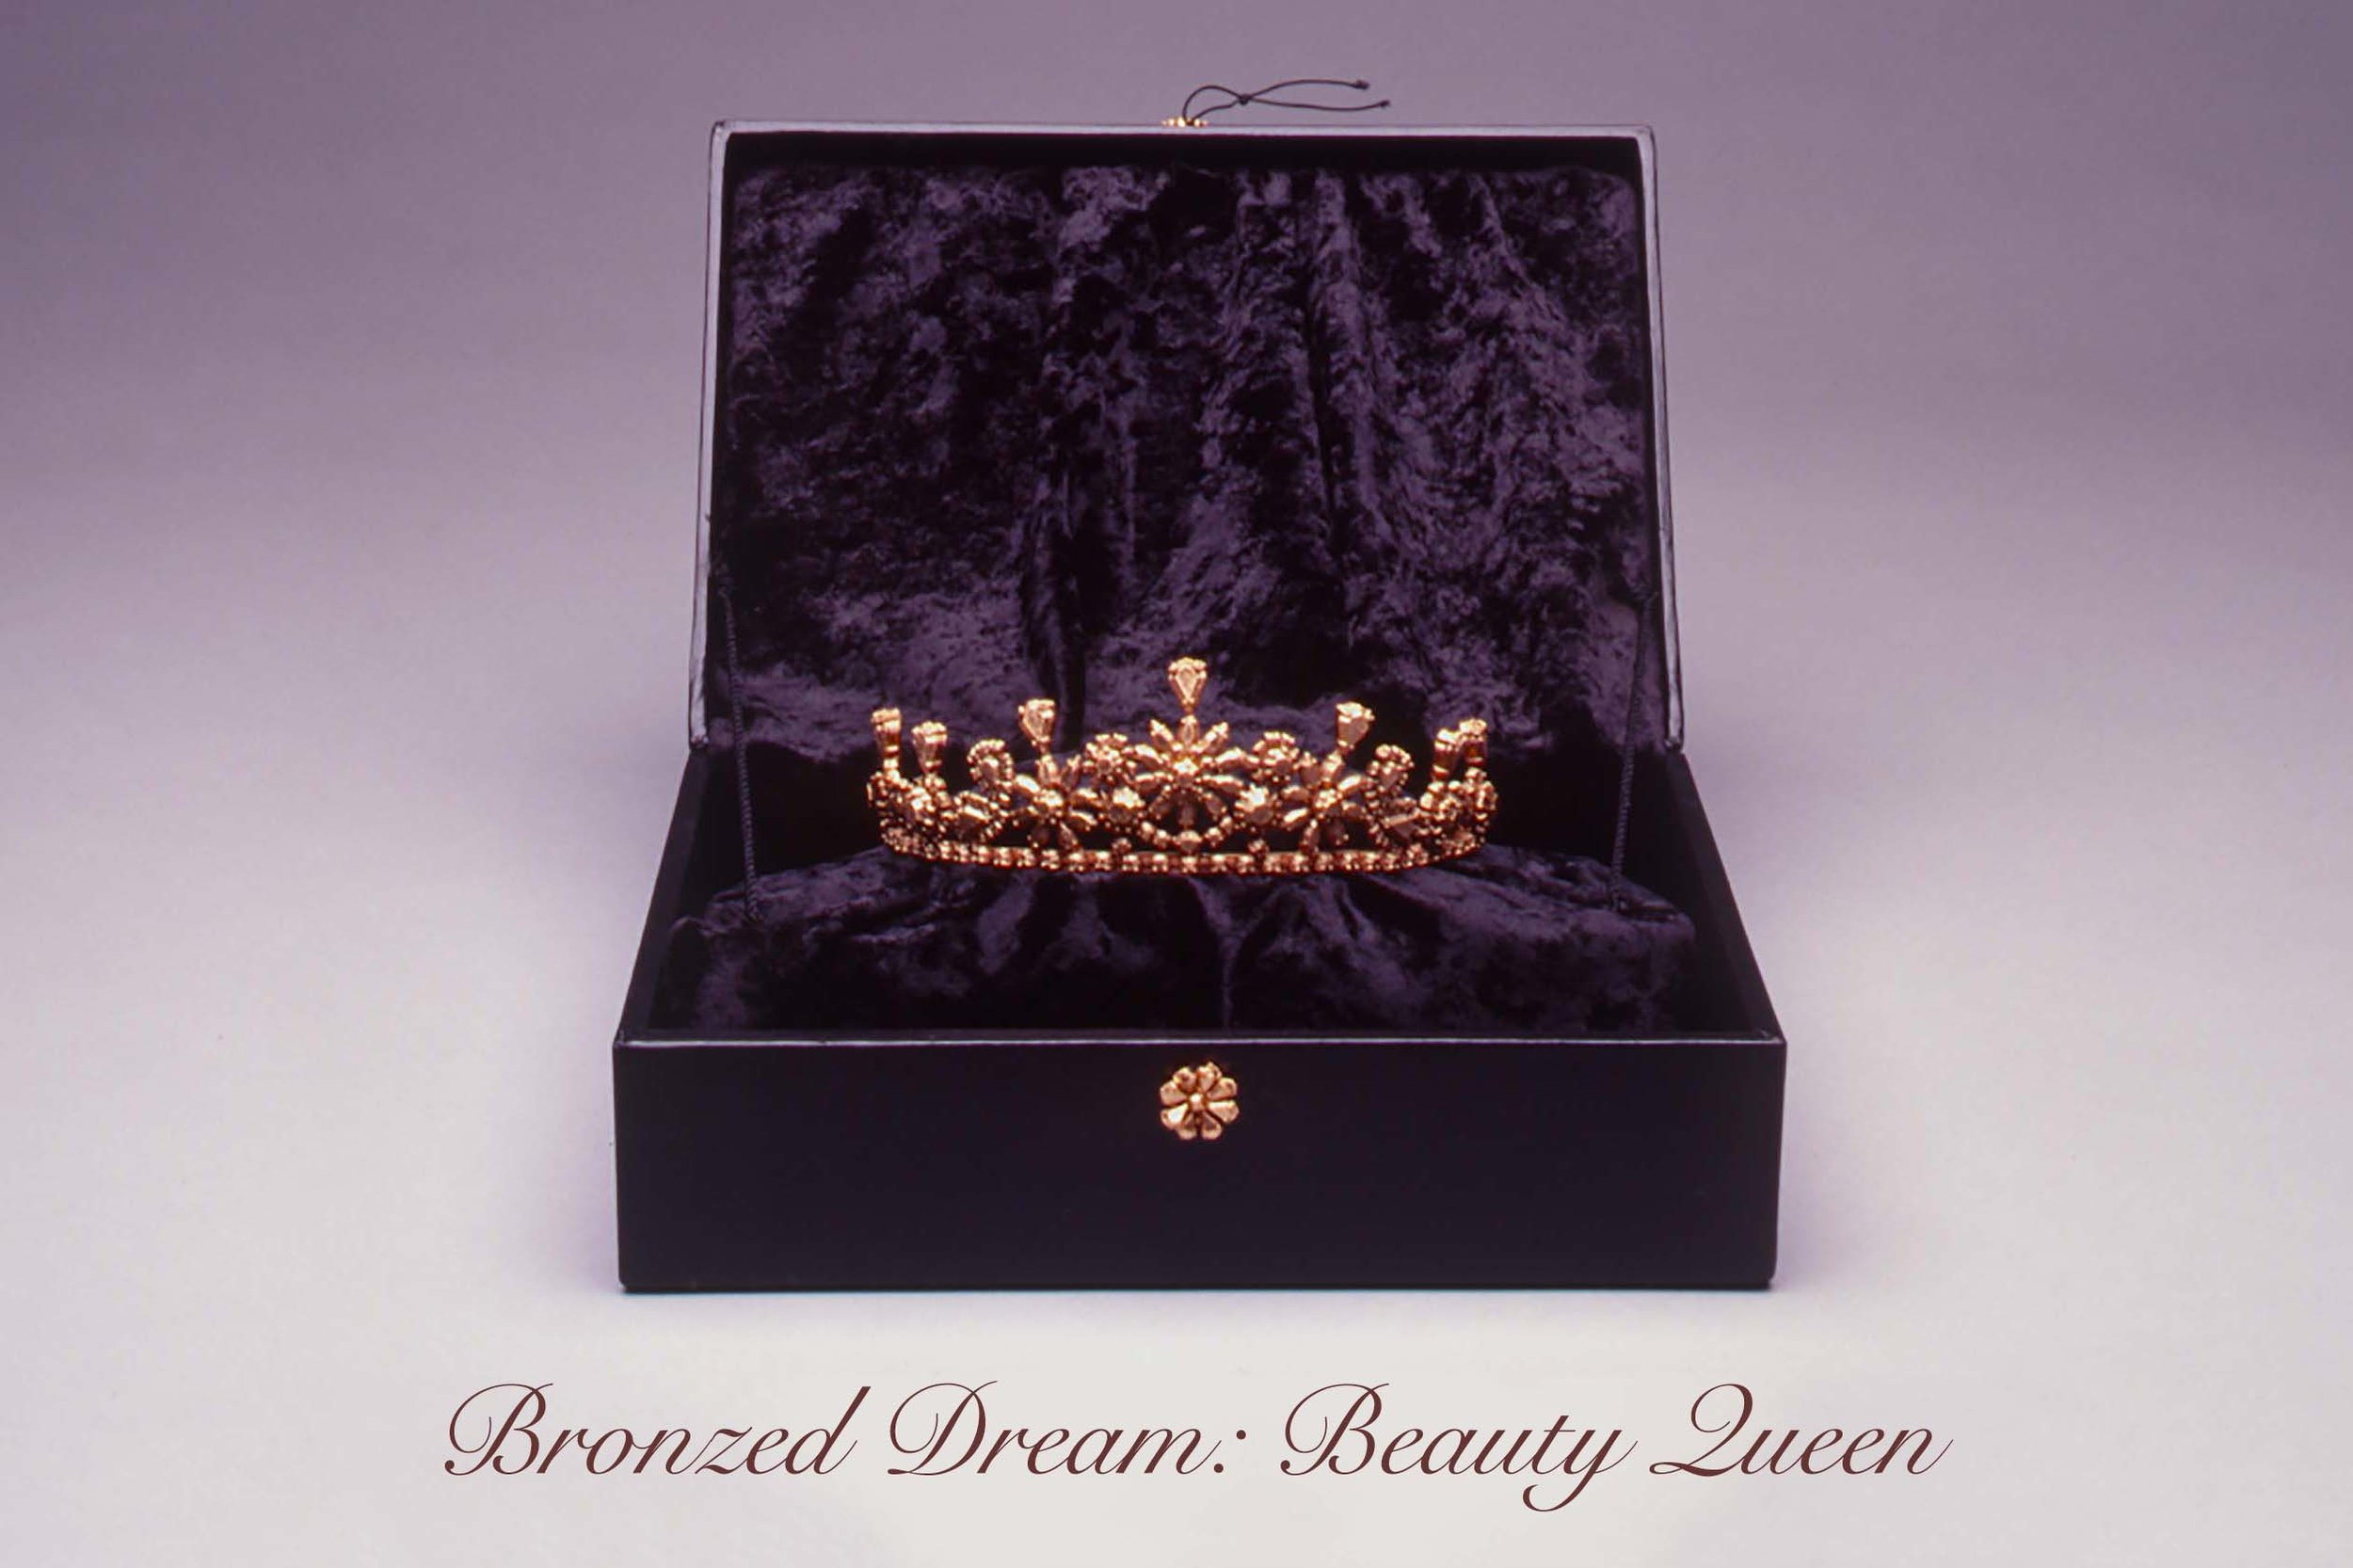 Bronzed-dream-beautyqueen-ps-txt.jpg